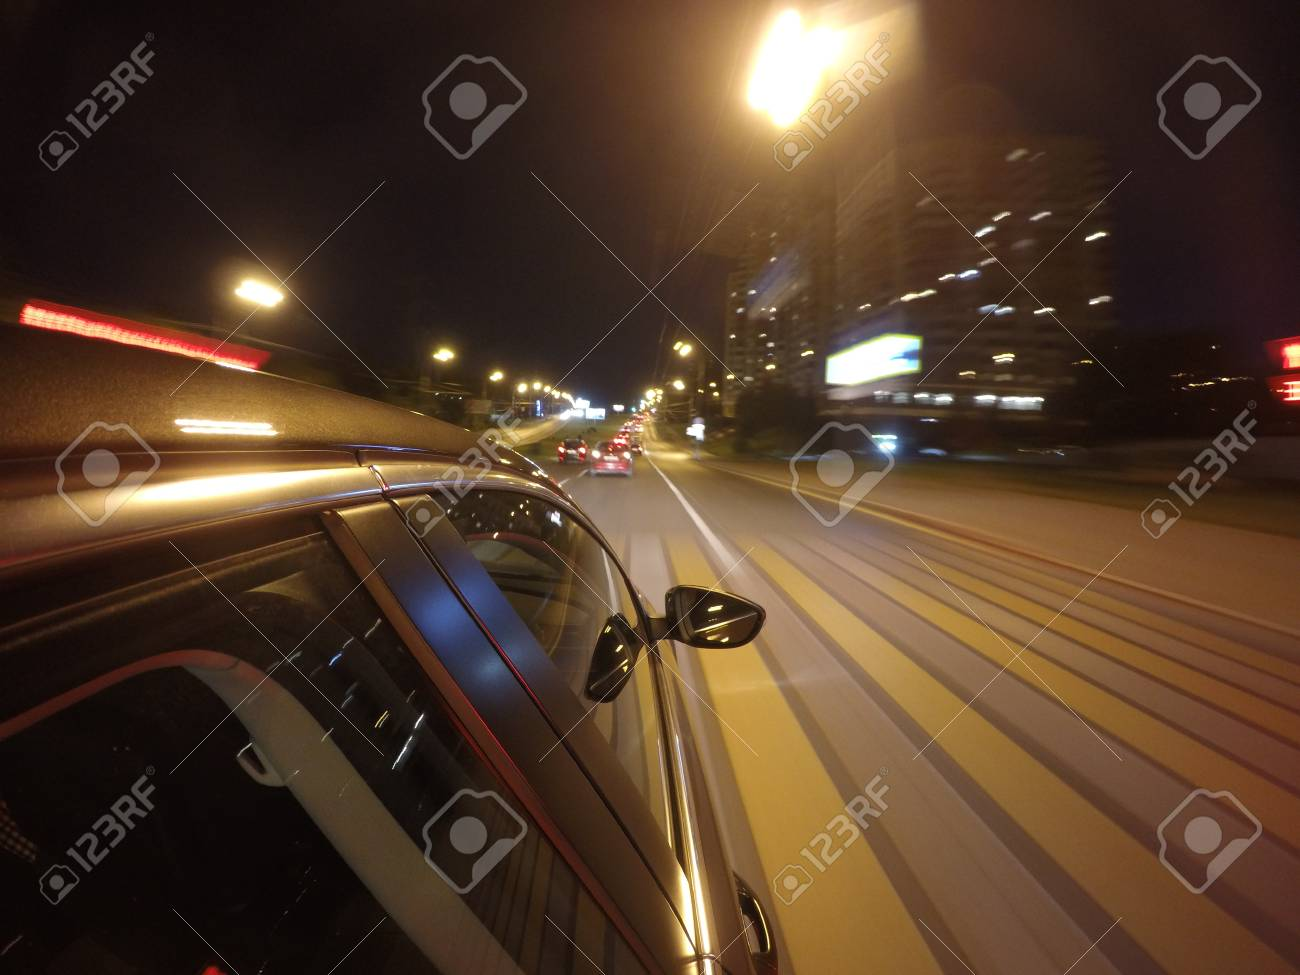 The Car Is Moving At High Speed On The Night Road In The City Stock Photo Picture And Royalty Free Image Image 88234400